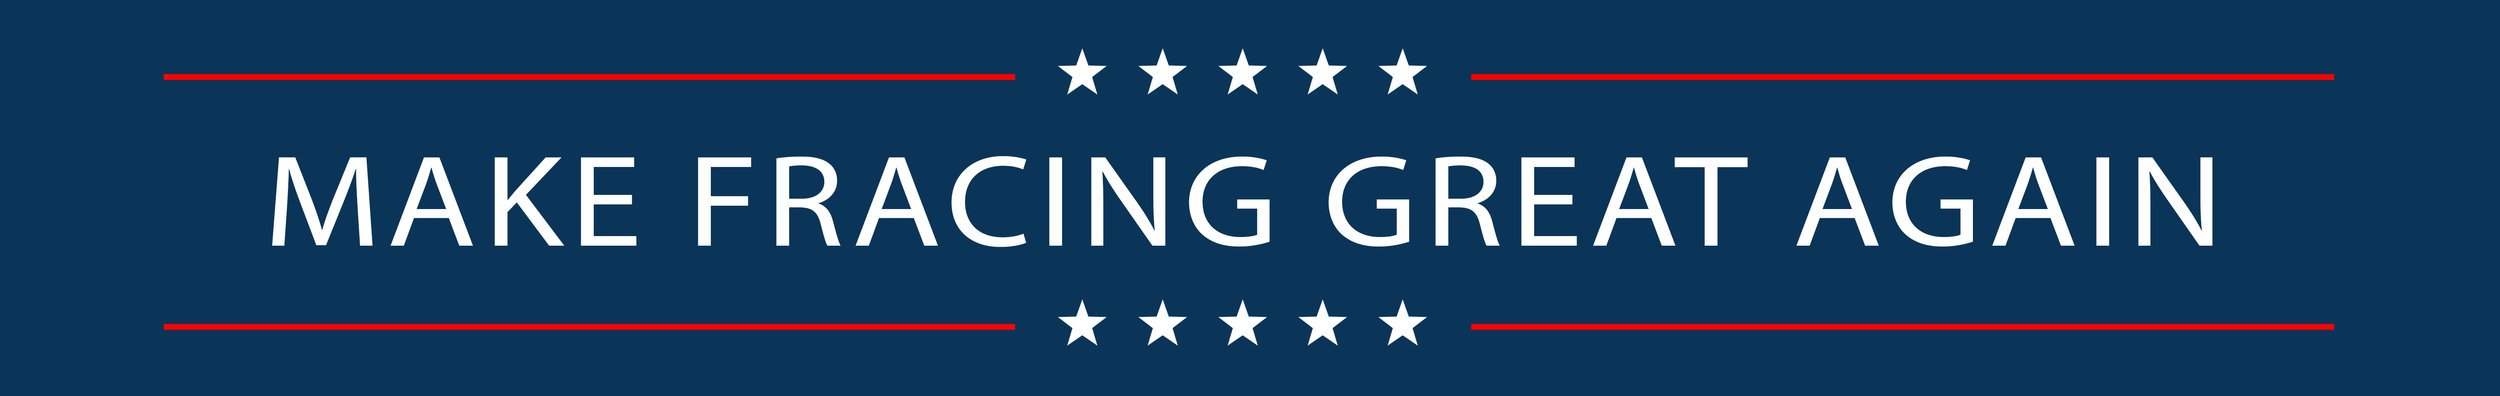 Make Fracing Great Again_Banner.jpg